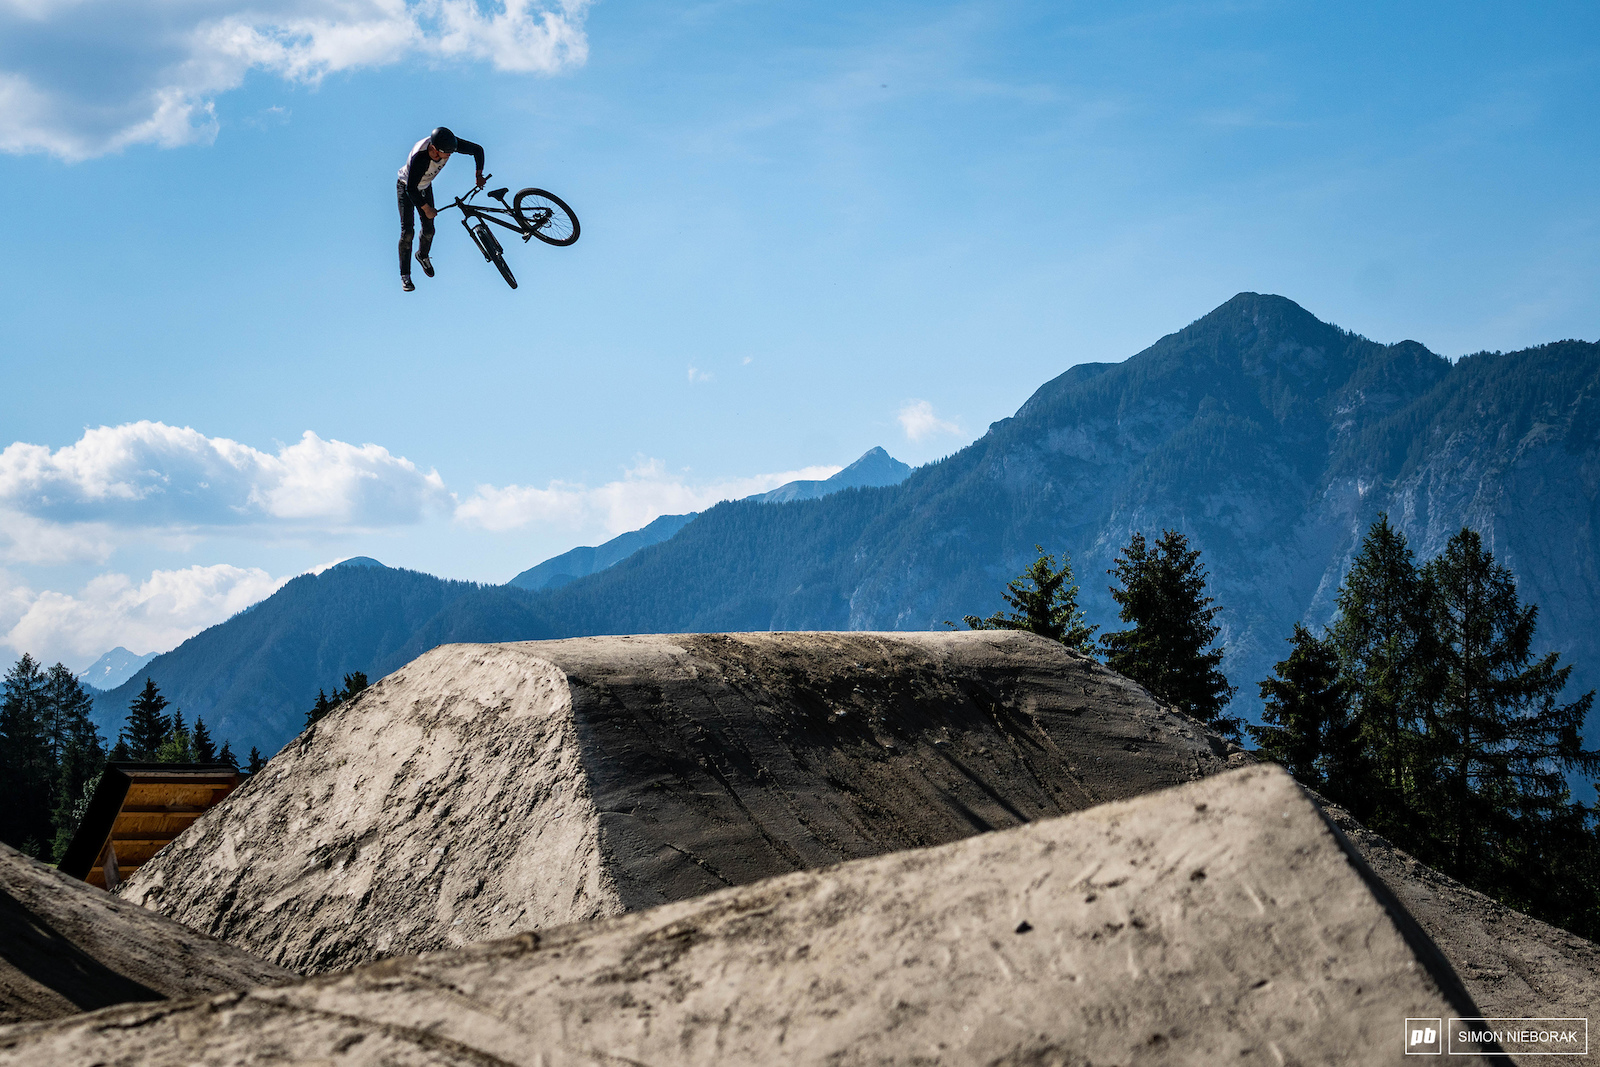 Erick Fedko is more and more confident with his riding at the big slopestyle courses with every next event he goes to. Remember his name you ll be hearing it much more often...